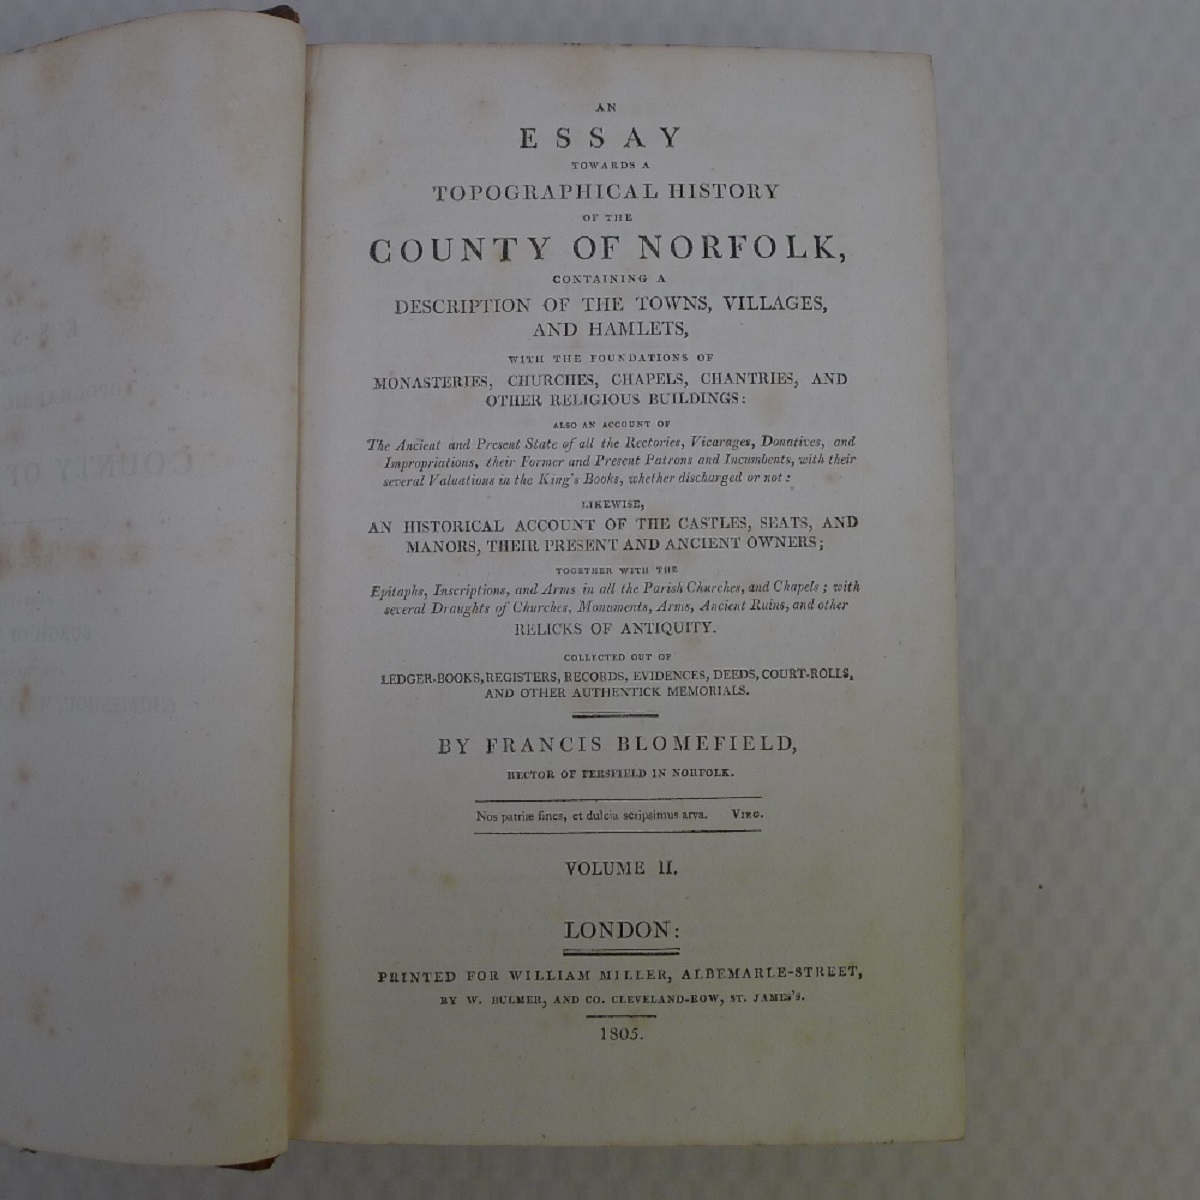 All 11 volumes of An Essay Towards the Topographical History of the County of Norfolk by Thomas - Image 10 of 23